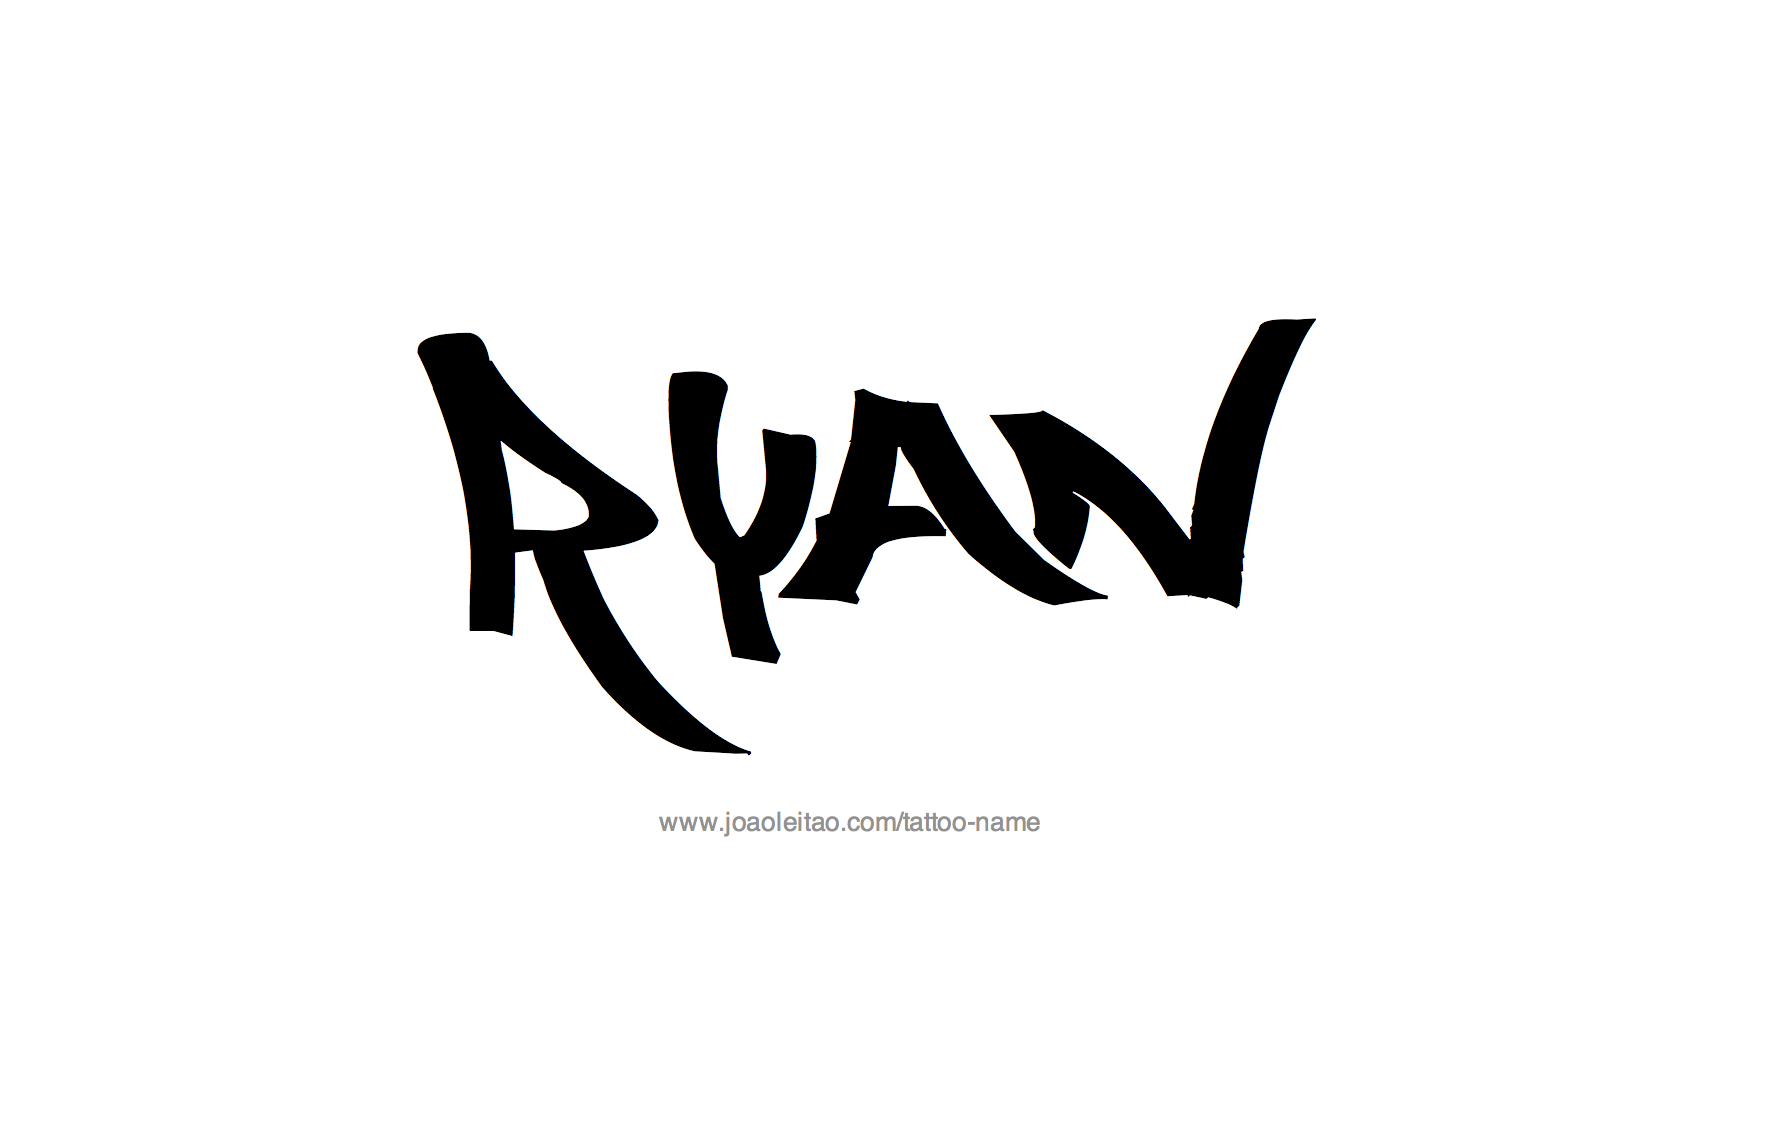 21++ The name ryan in different fonts ideas